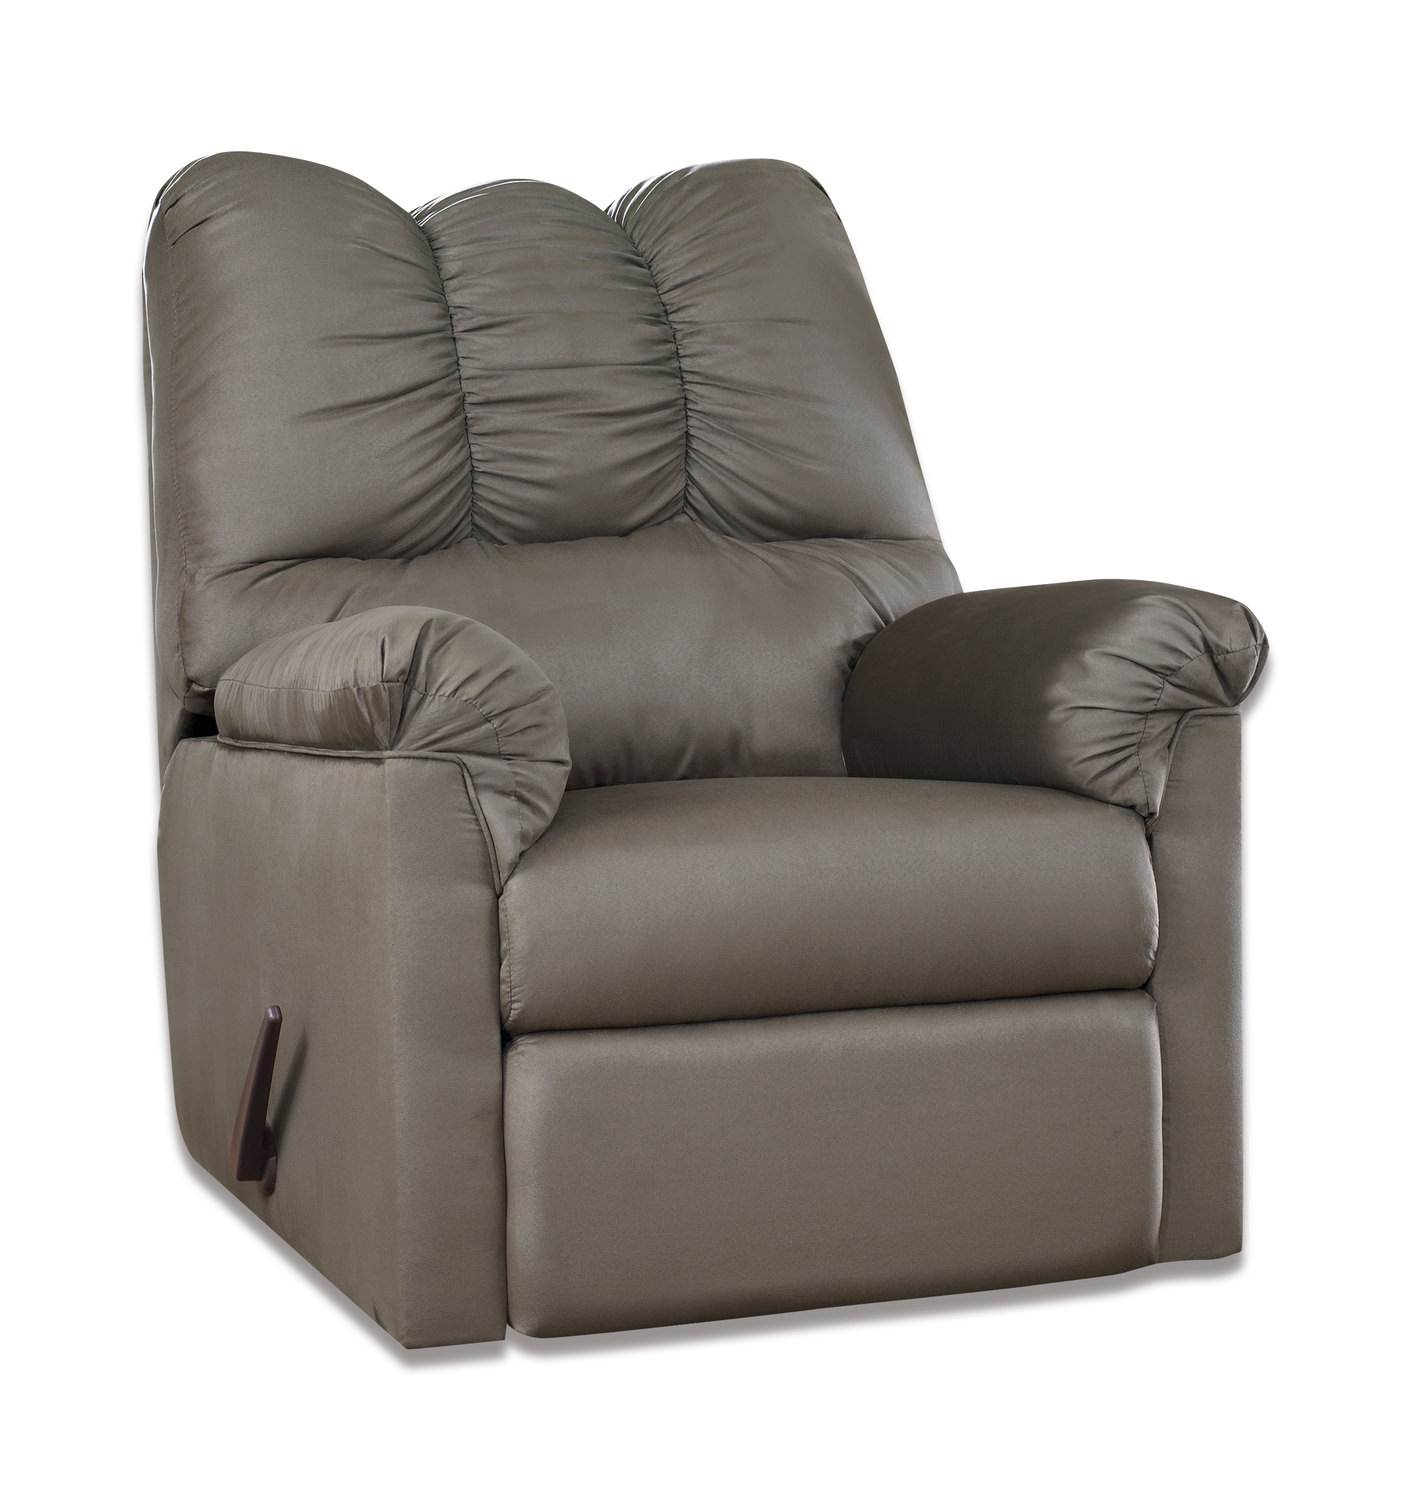 Recliners – Leather, Rocker & Swivel – Hom Furniture Within Swivel Tobacco Leather Chairs (Image 14 of 20)